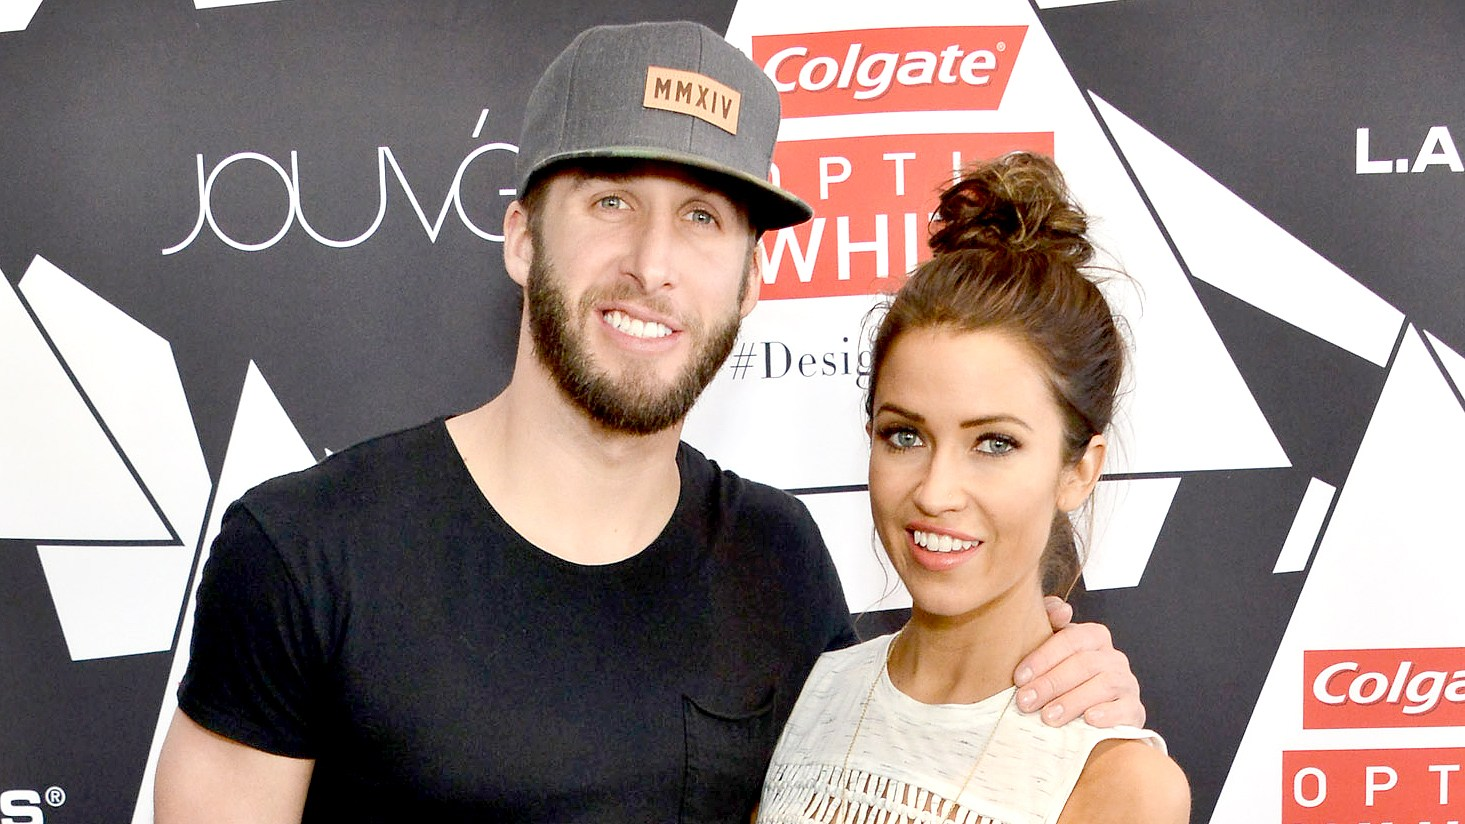 Shawn Booth and Kaitlyn Bristowe attend the Colgate Optic White Beauty Bar Ð Day 1 at Hudson Loft on February 13, 2016 in Los Angeles, California.